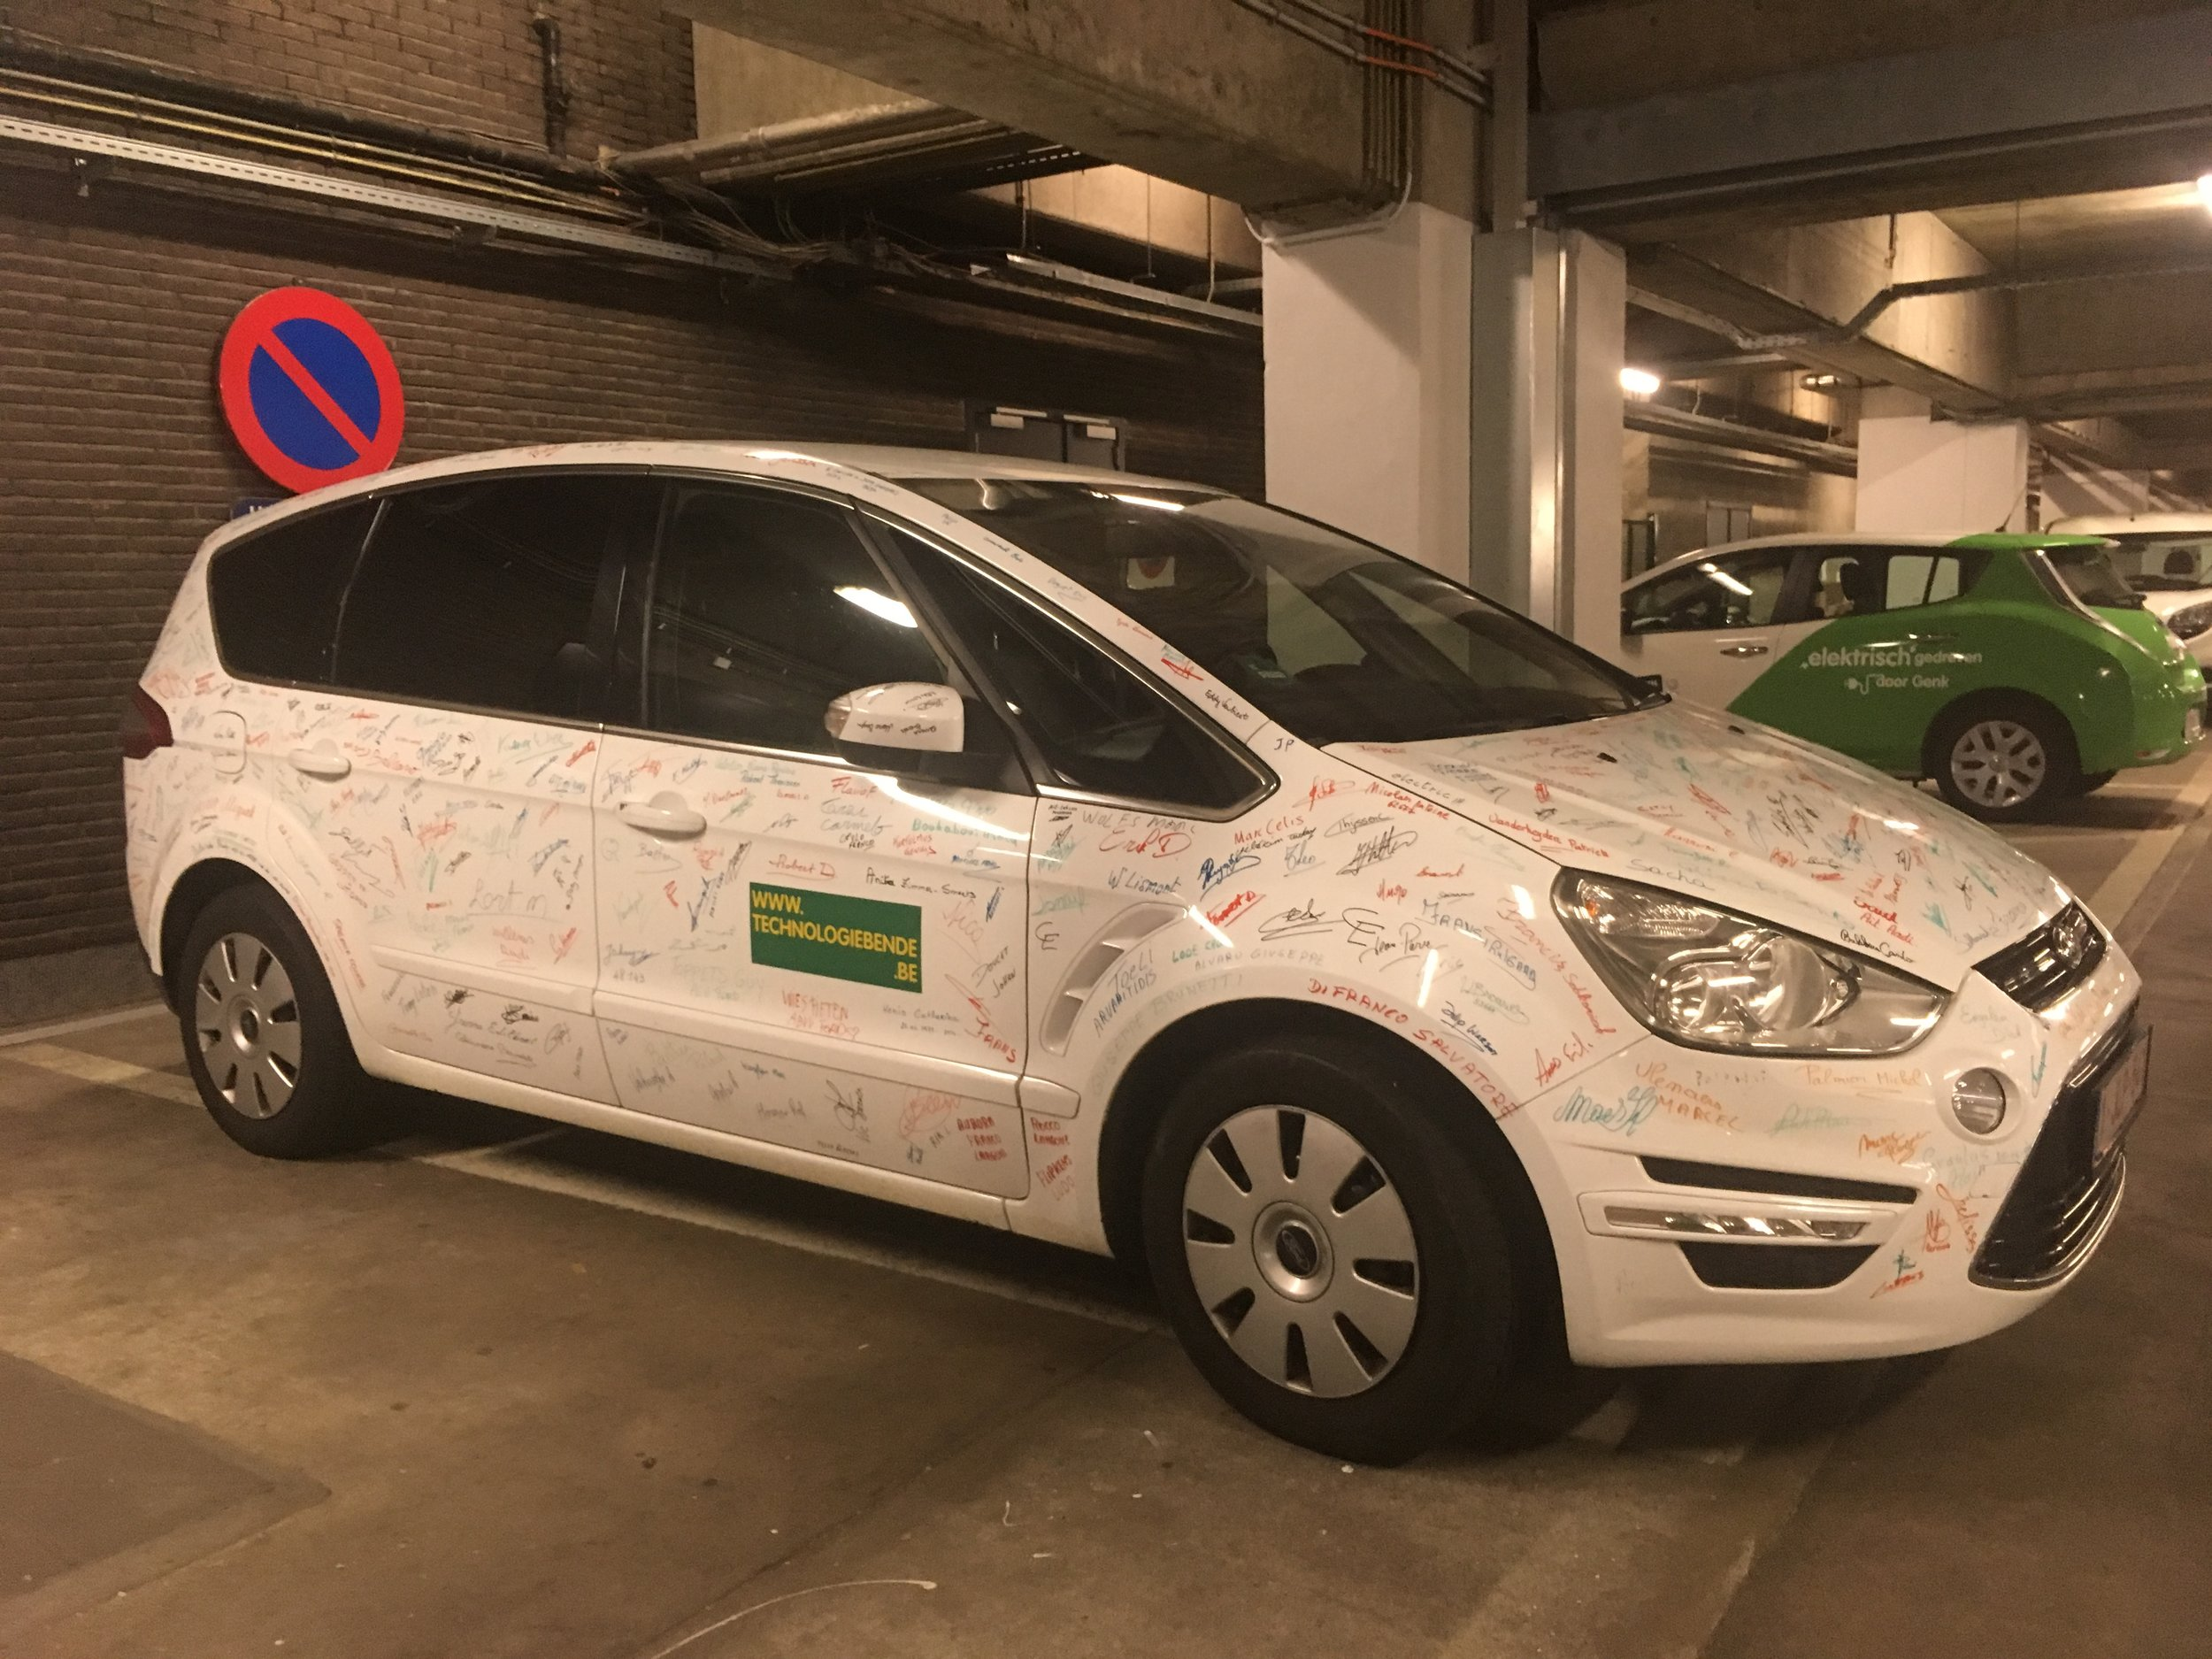 The last Ford (S-Max) ever produced in Genk Signed by the factory workers